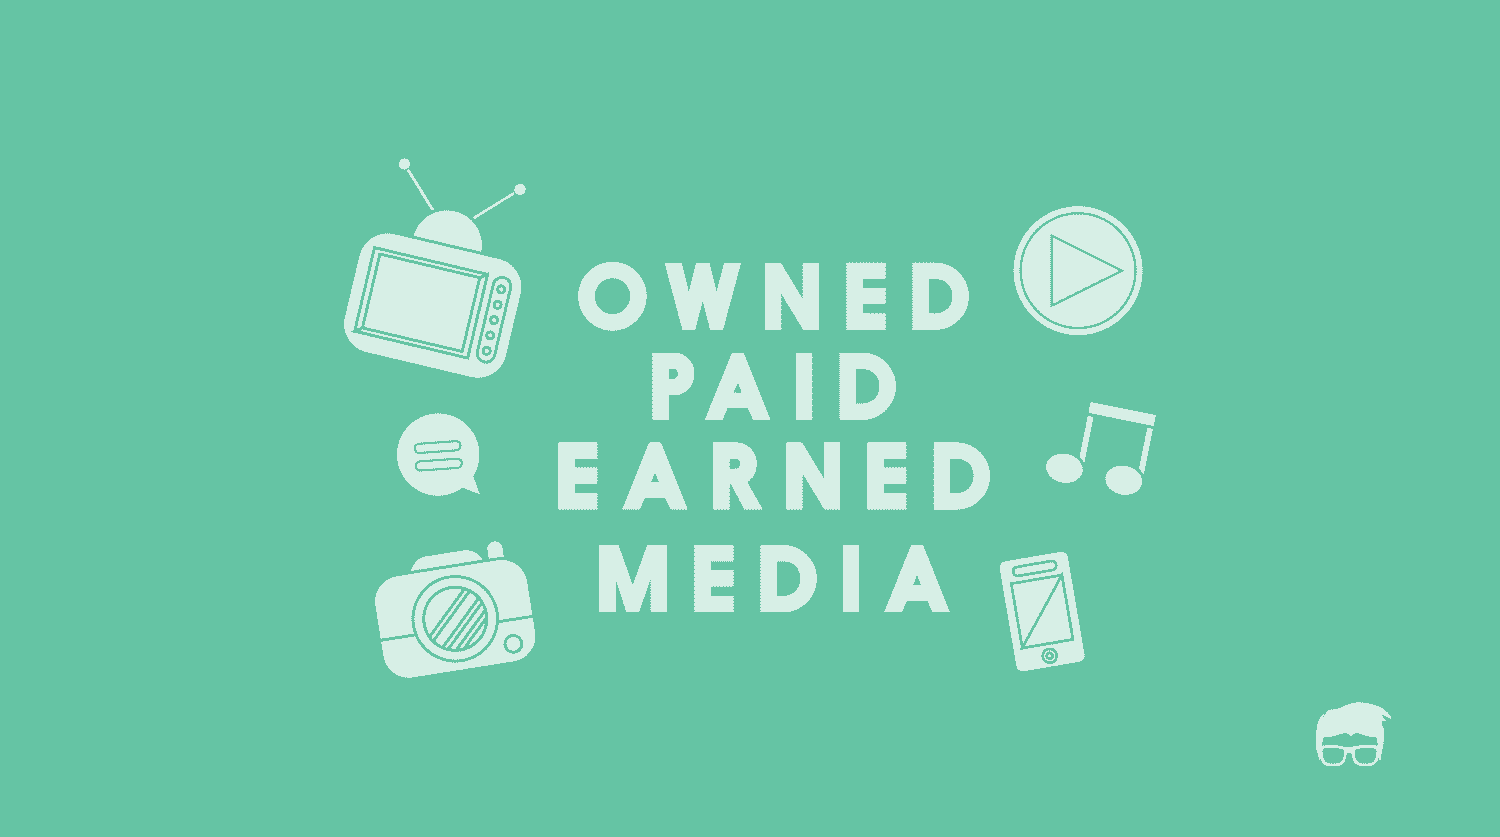 OWNED, PAID, AND EARNED MEDIA